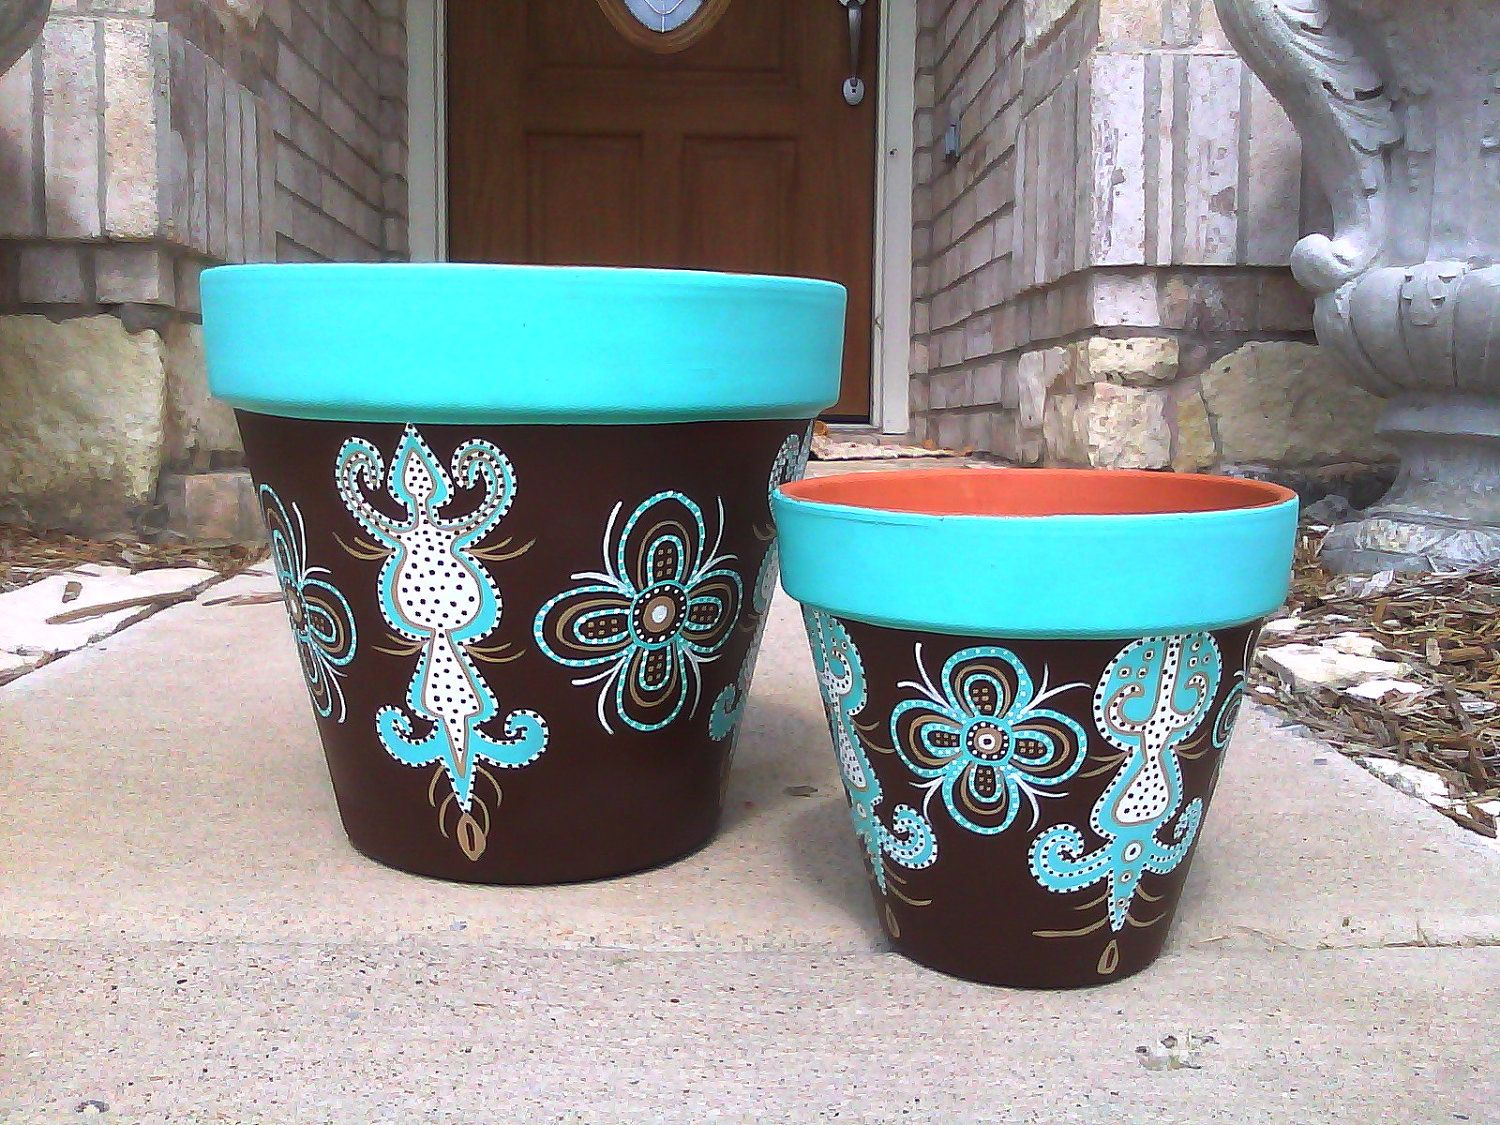 Hand Painted Flower Pots Turquoise And Brown 75 00 Via Etsy Painted Flower Pots Decorated Flower Pots Painted Clay Pots